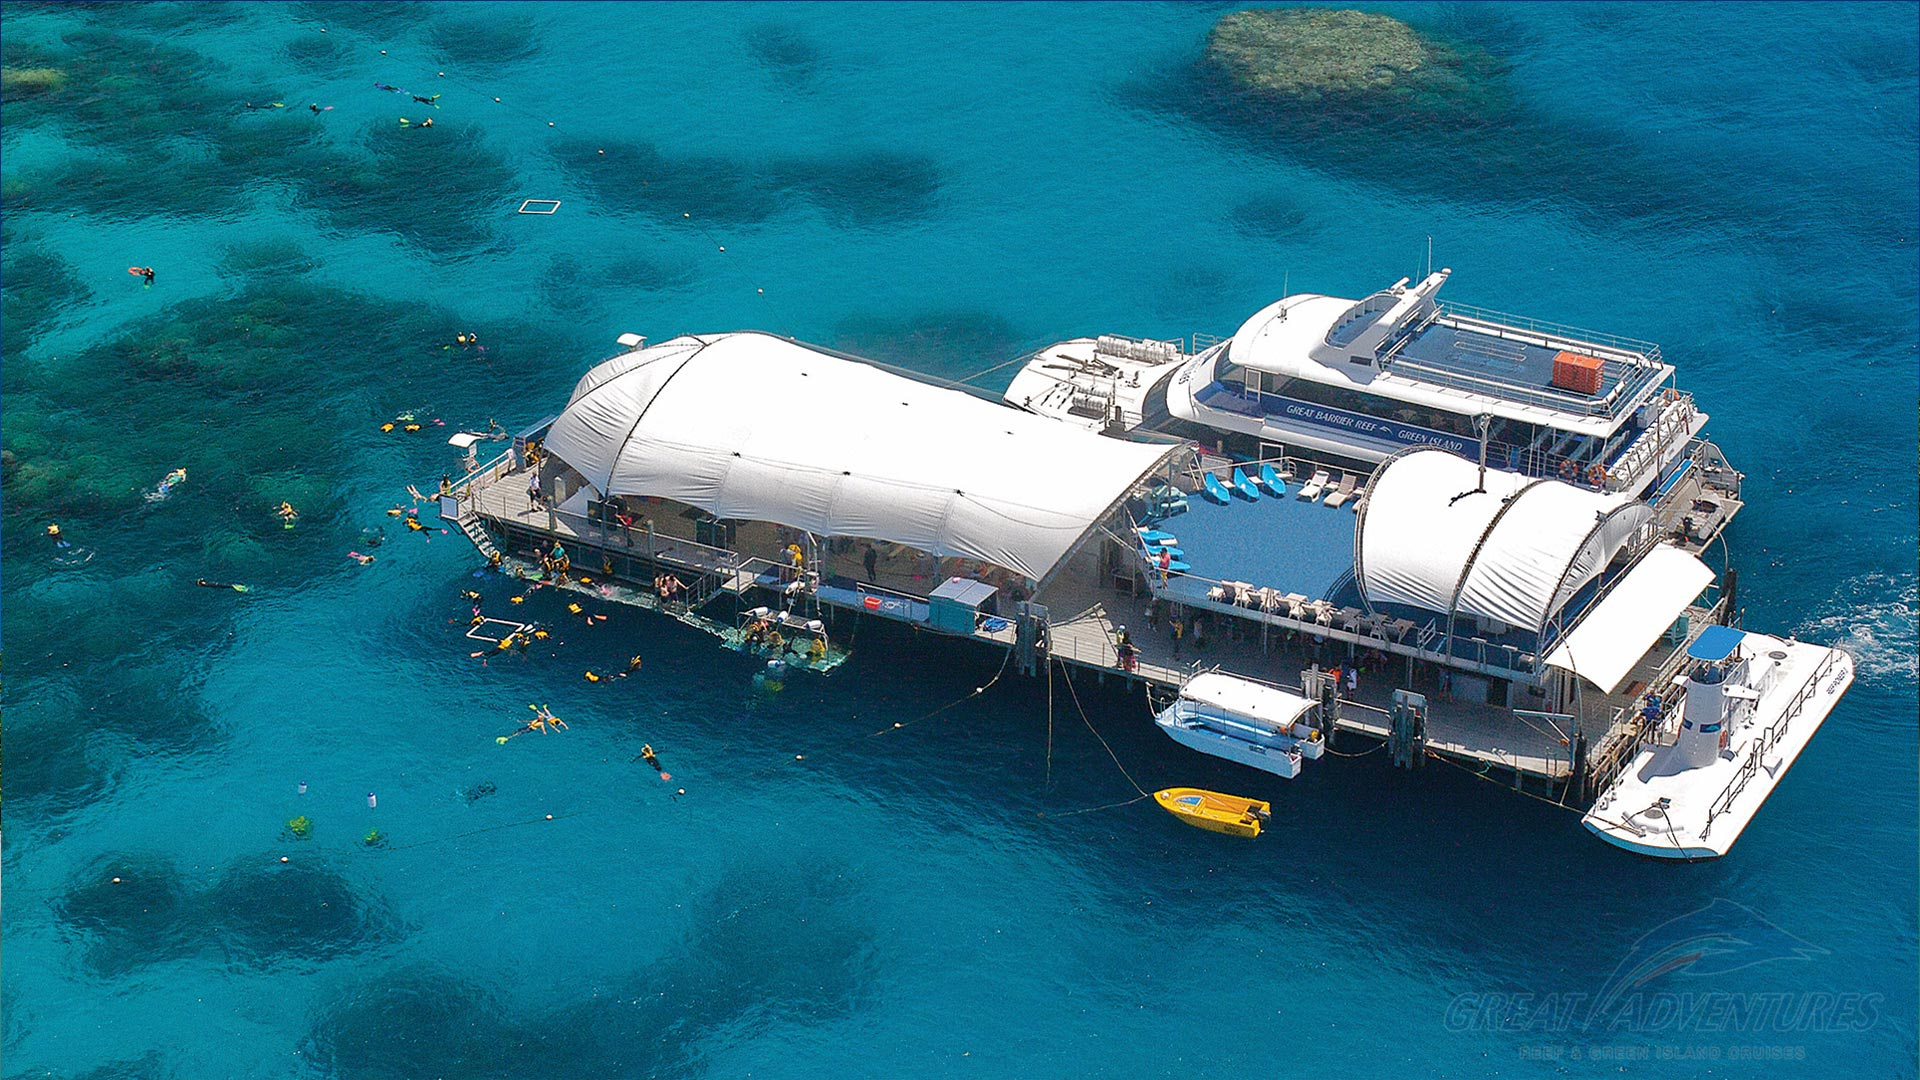 Outer Great Barrier Reef Platform